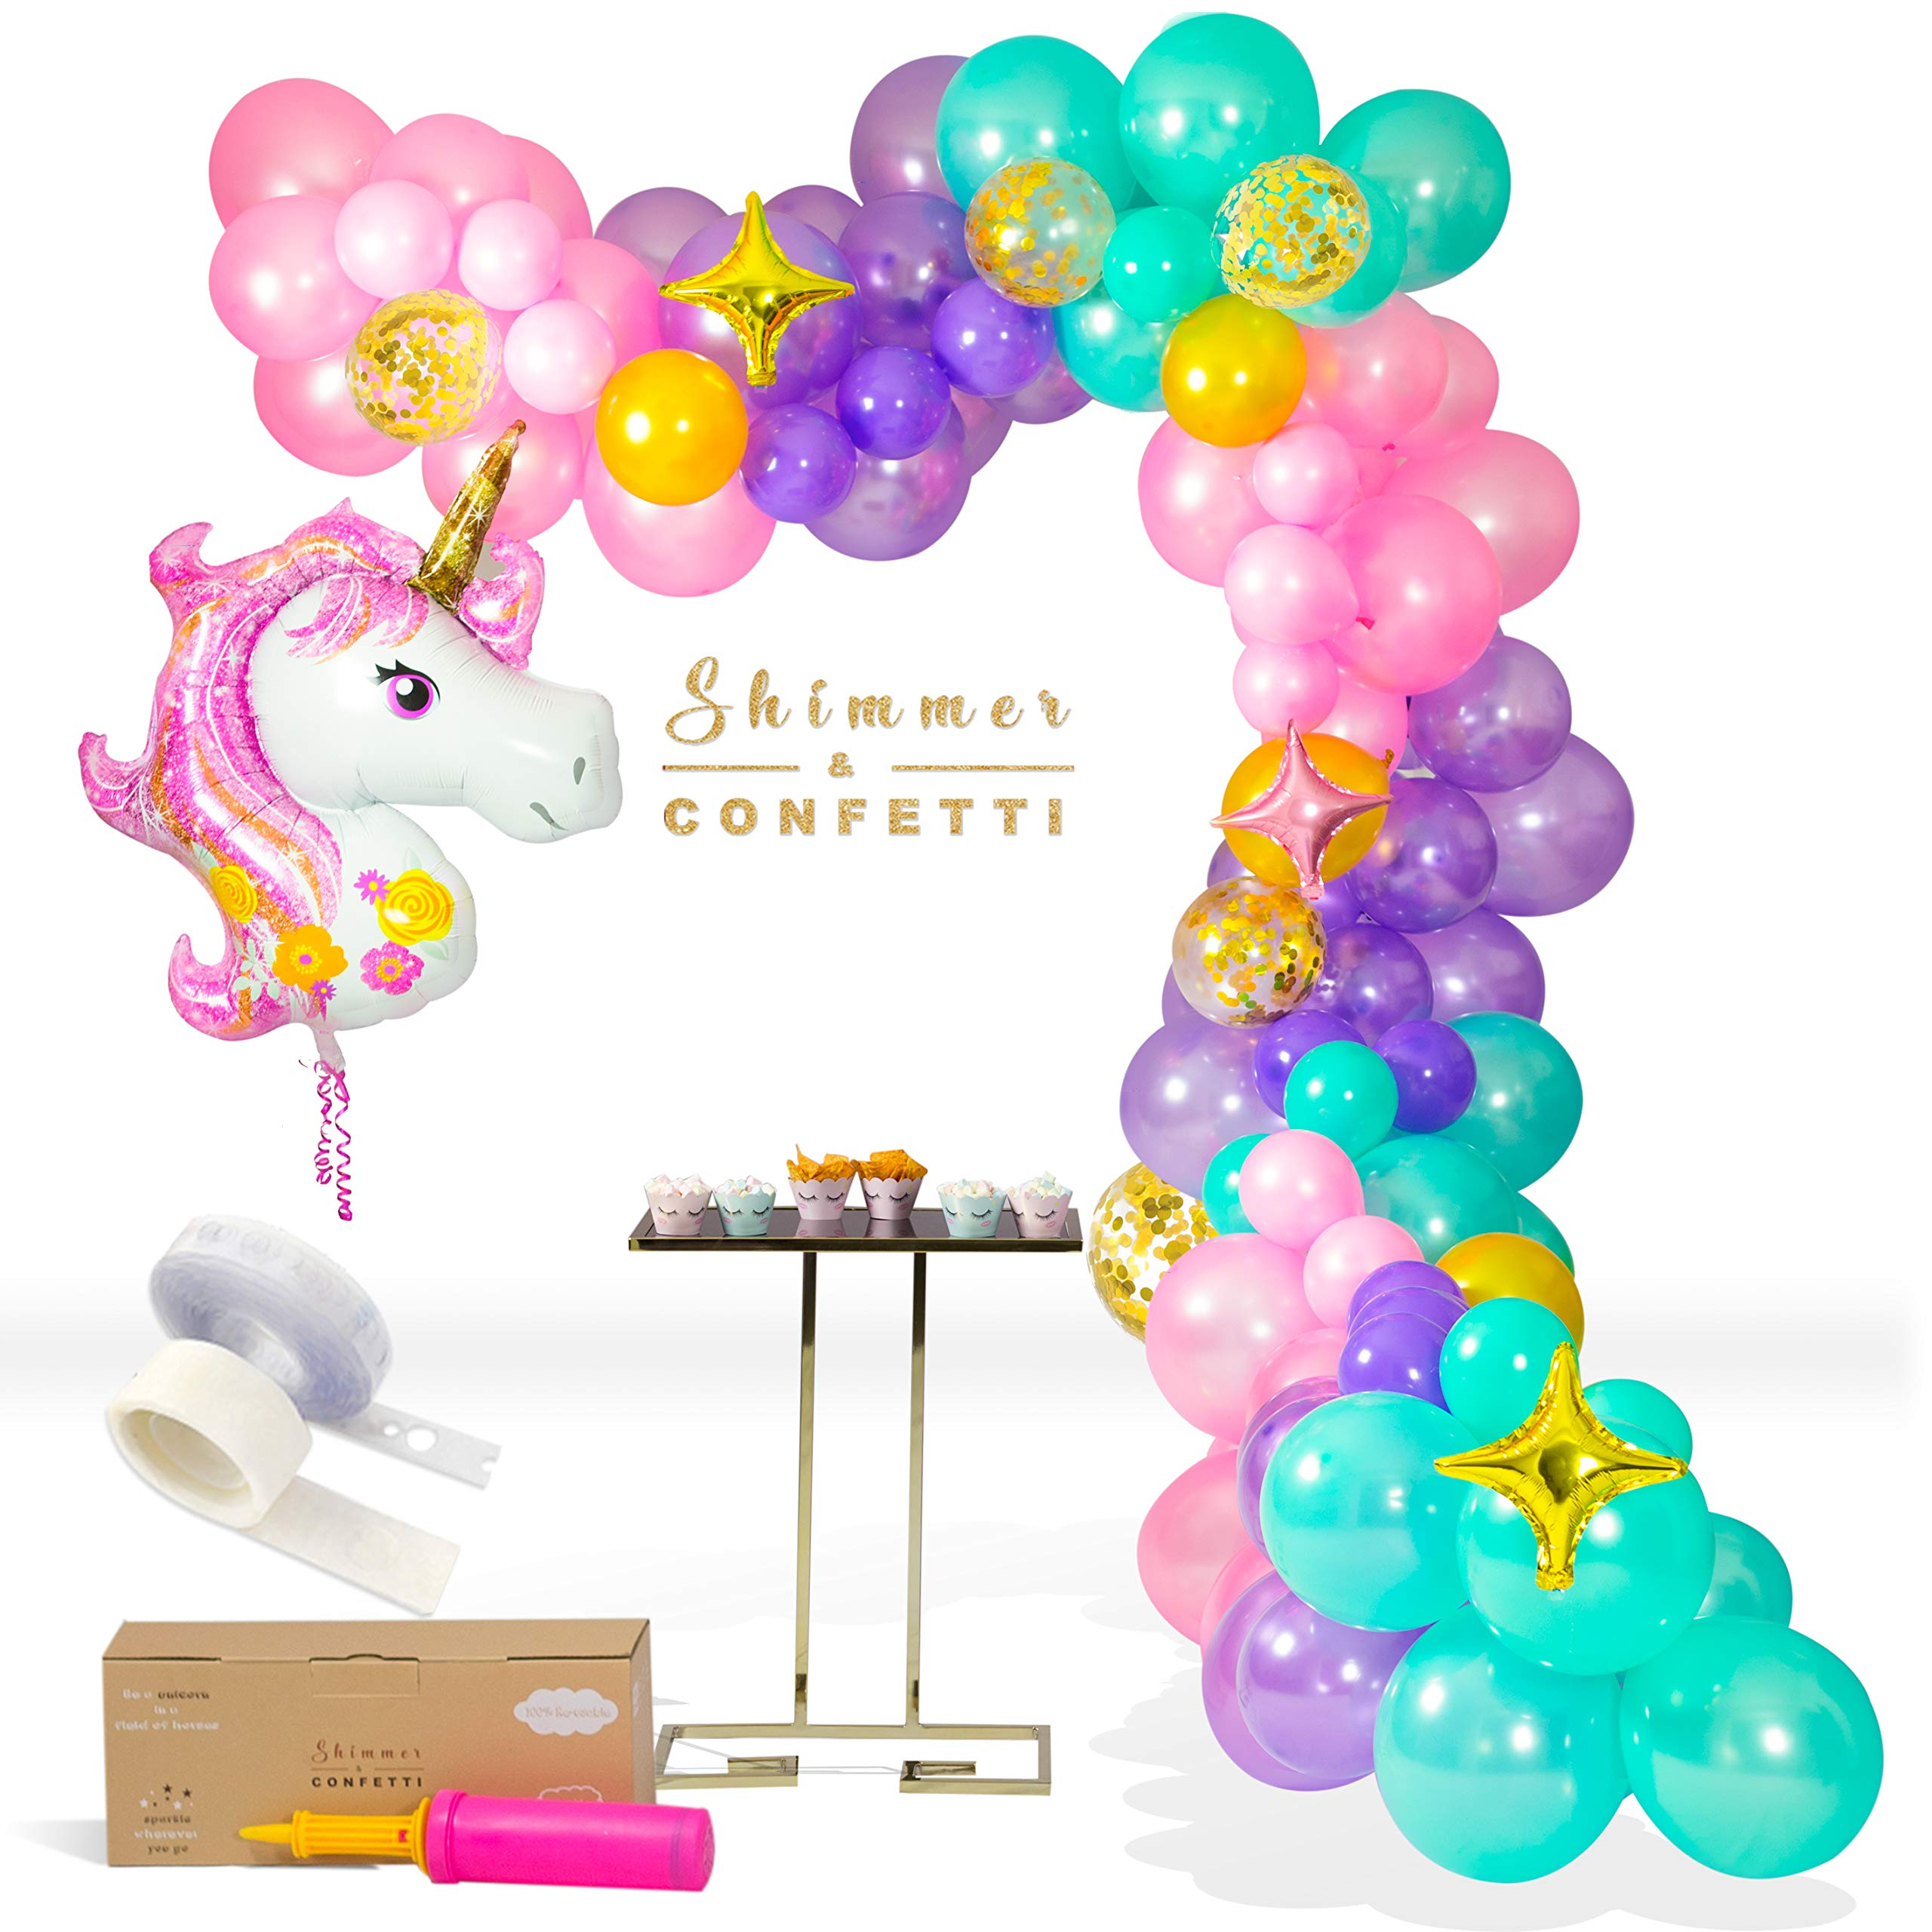 Shimmer and Confetti Premium 16 foot Unicorn Balloon Arch and Garland Kit with Giant Unicorn Balloon, 145 Pink, Purple and Aqua Balloons, 5 Gold Confetti Balloons, Stars, 16 foot Balloon Strip, Pump